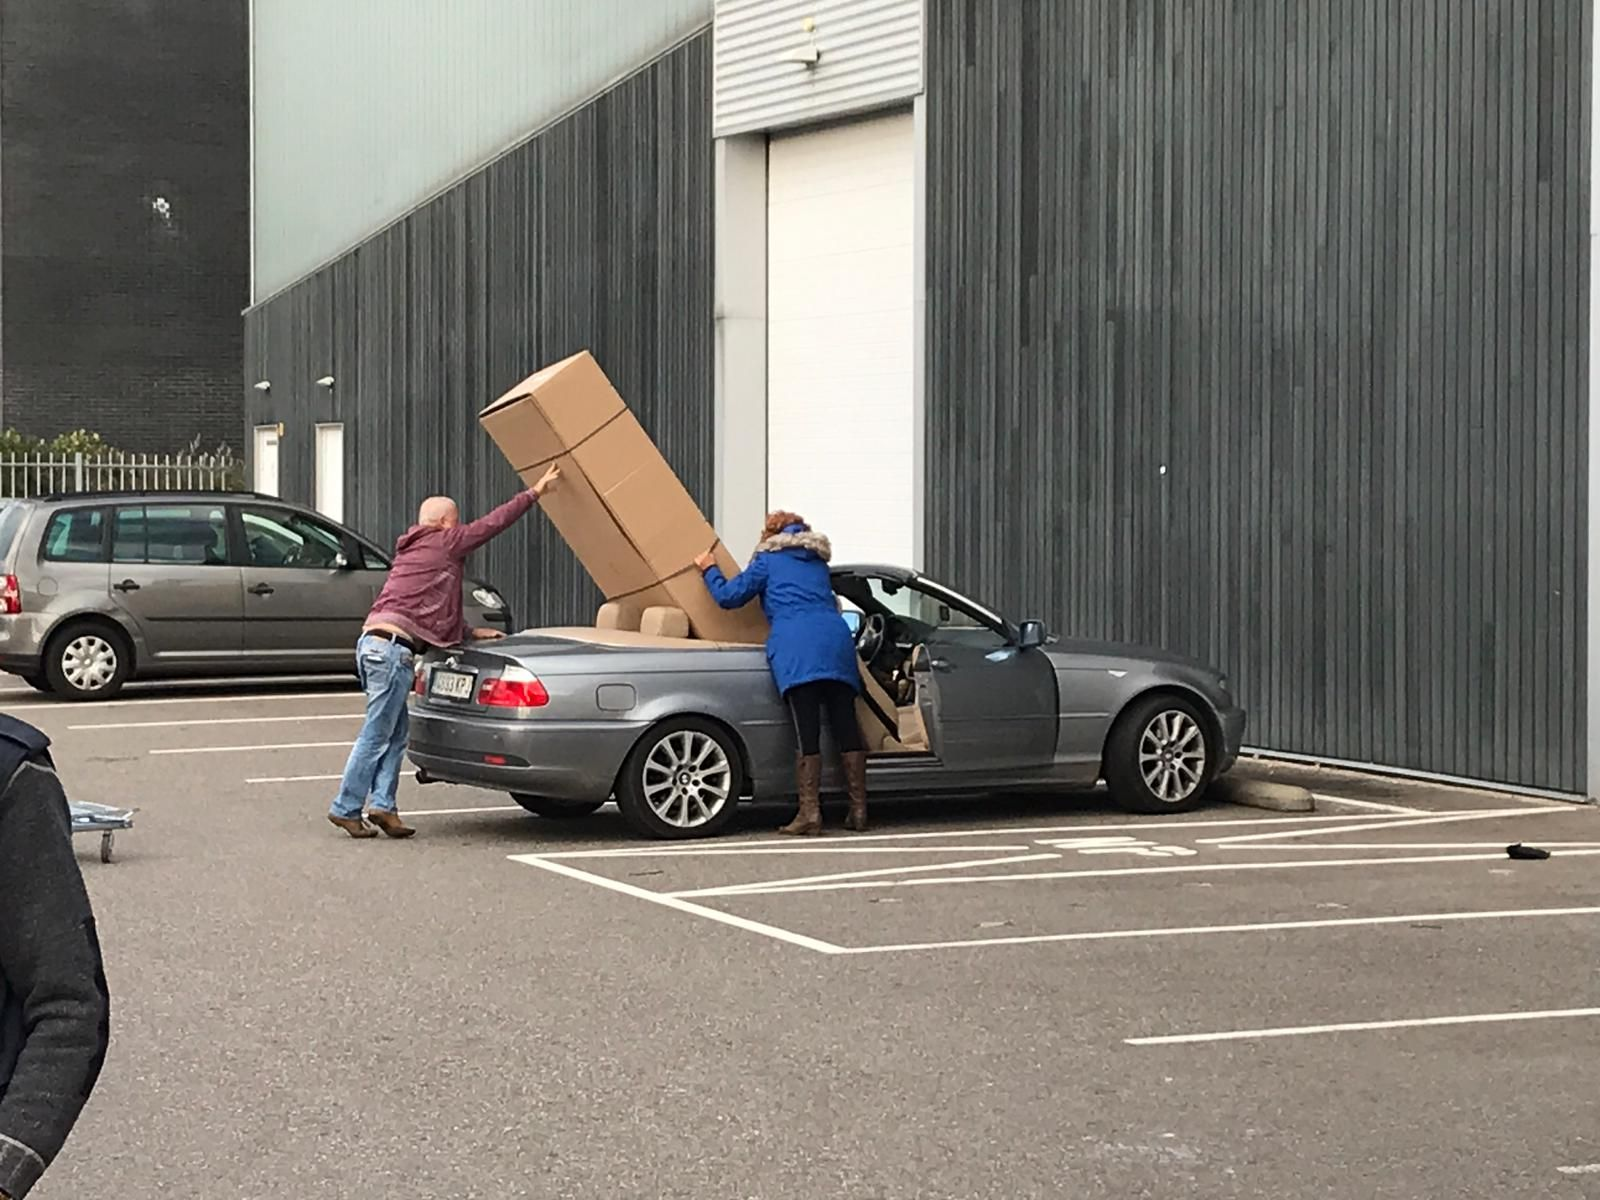 Normal day at Ikea